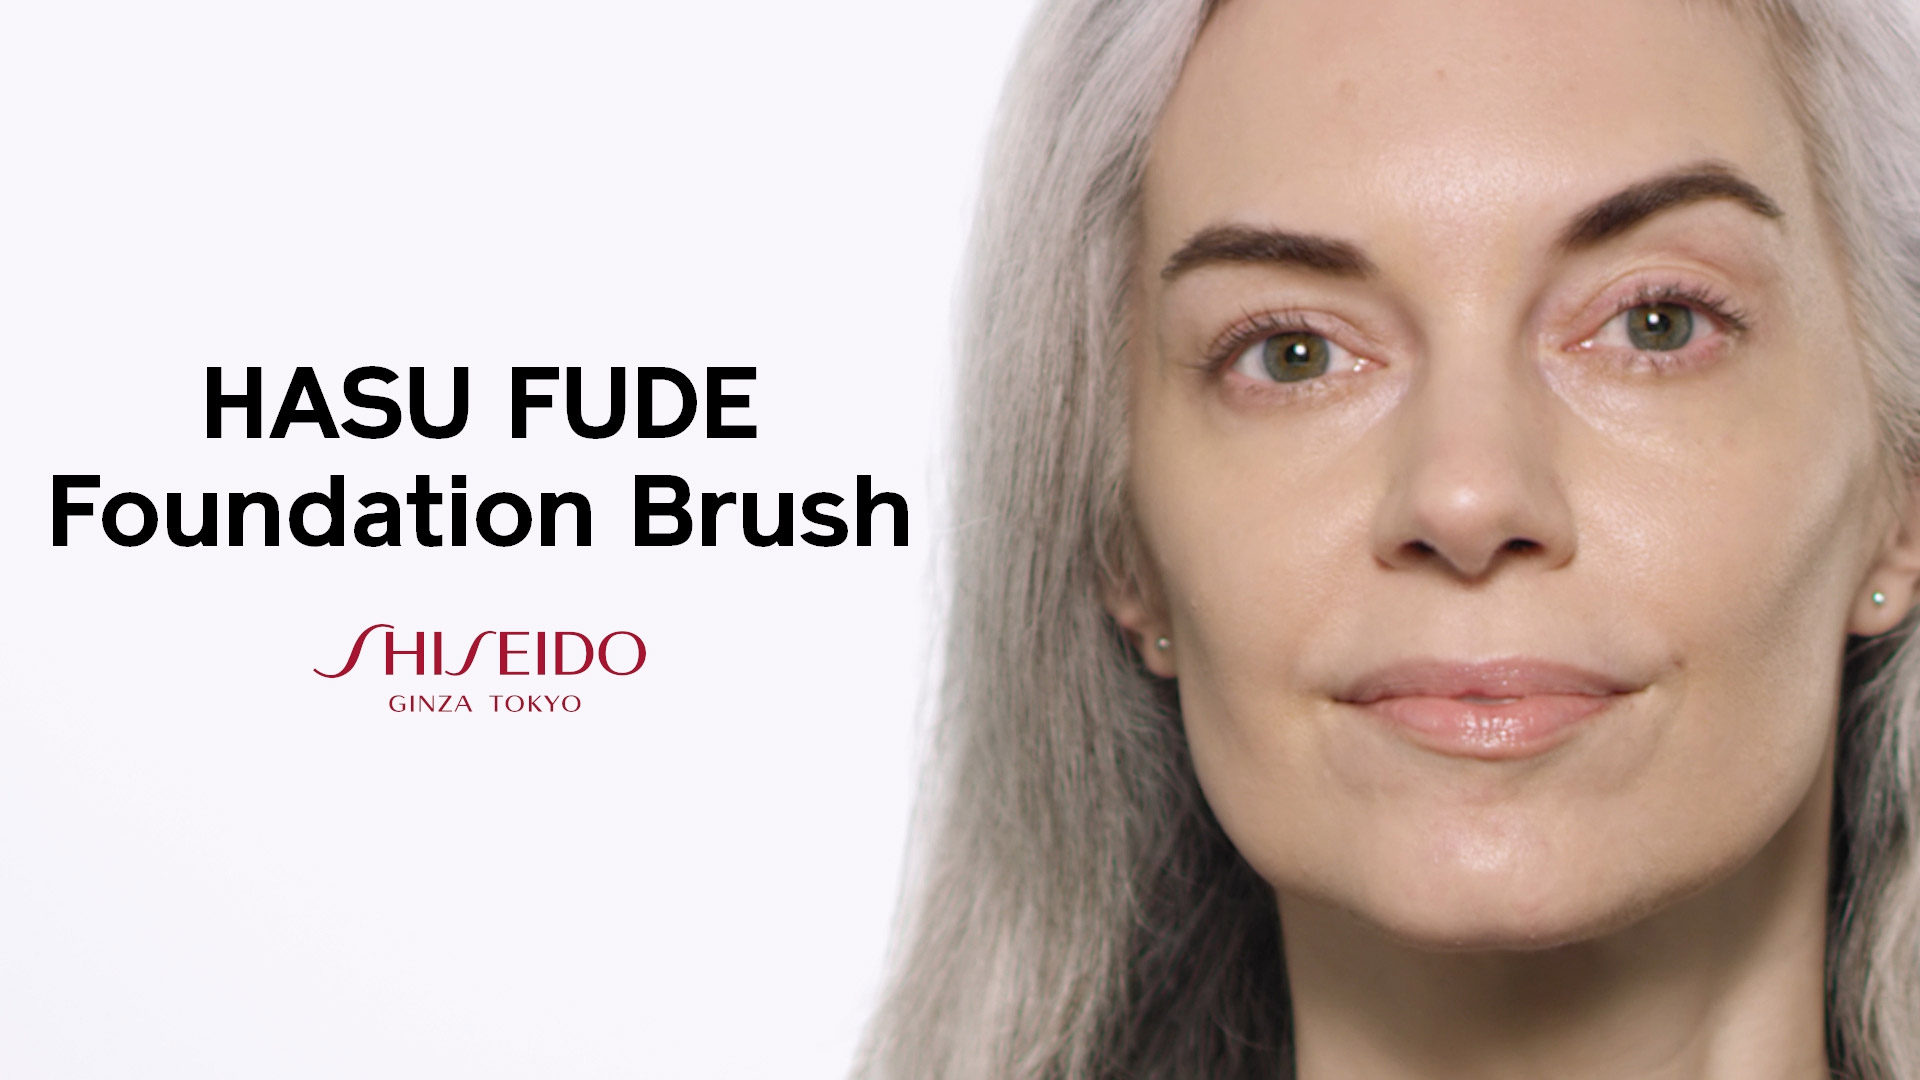 HASU FUDE Foundation Brush